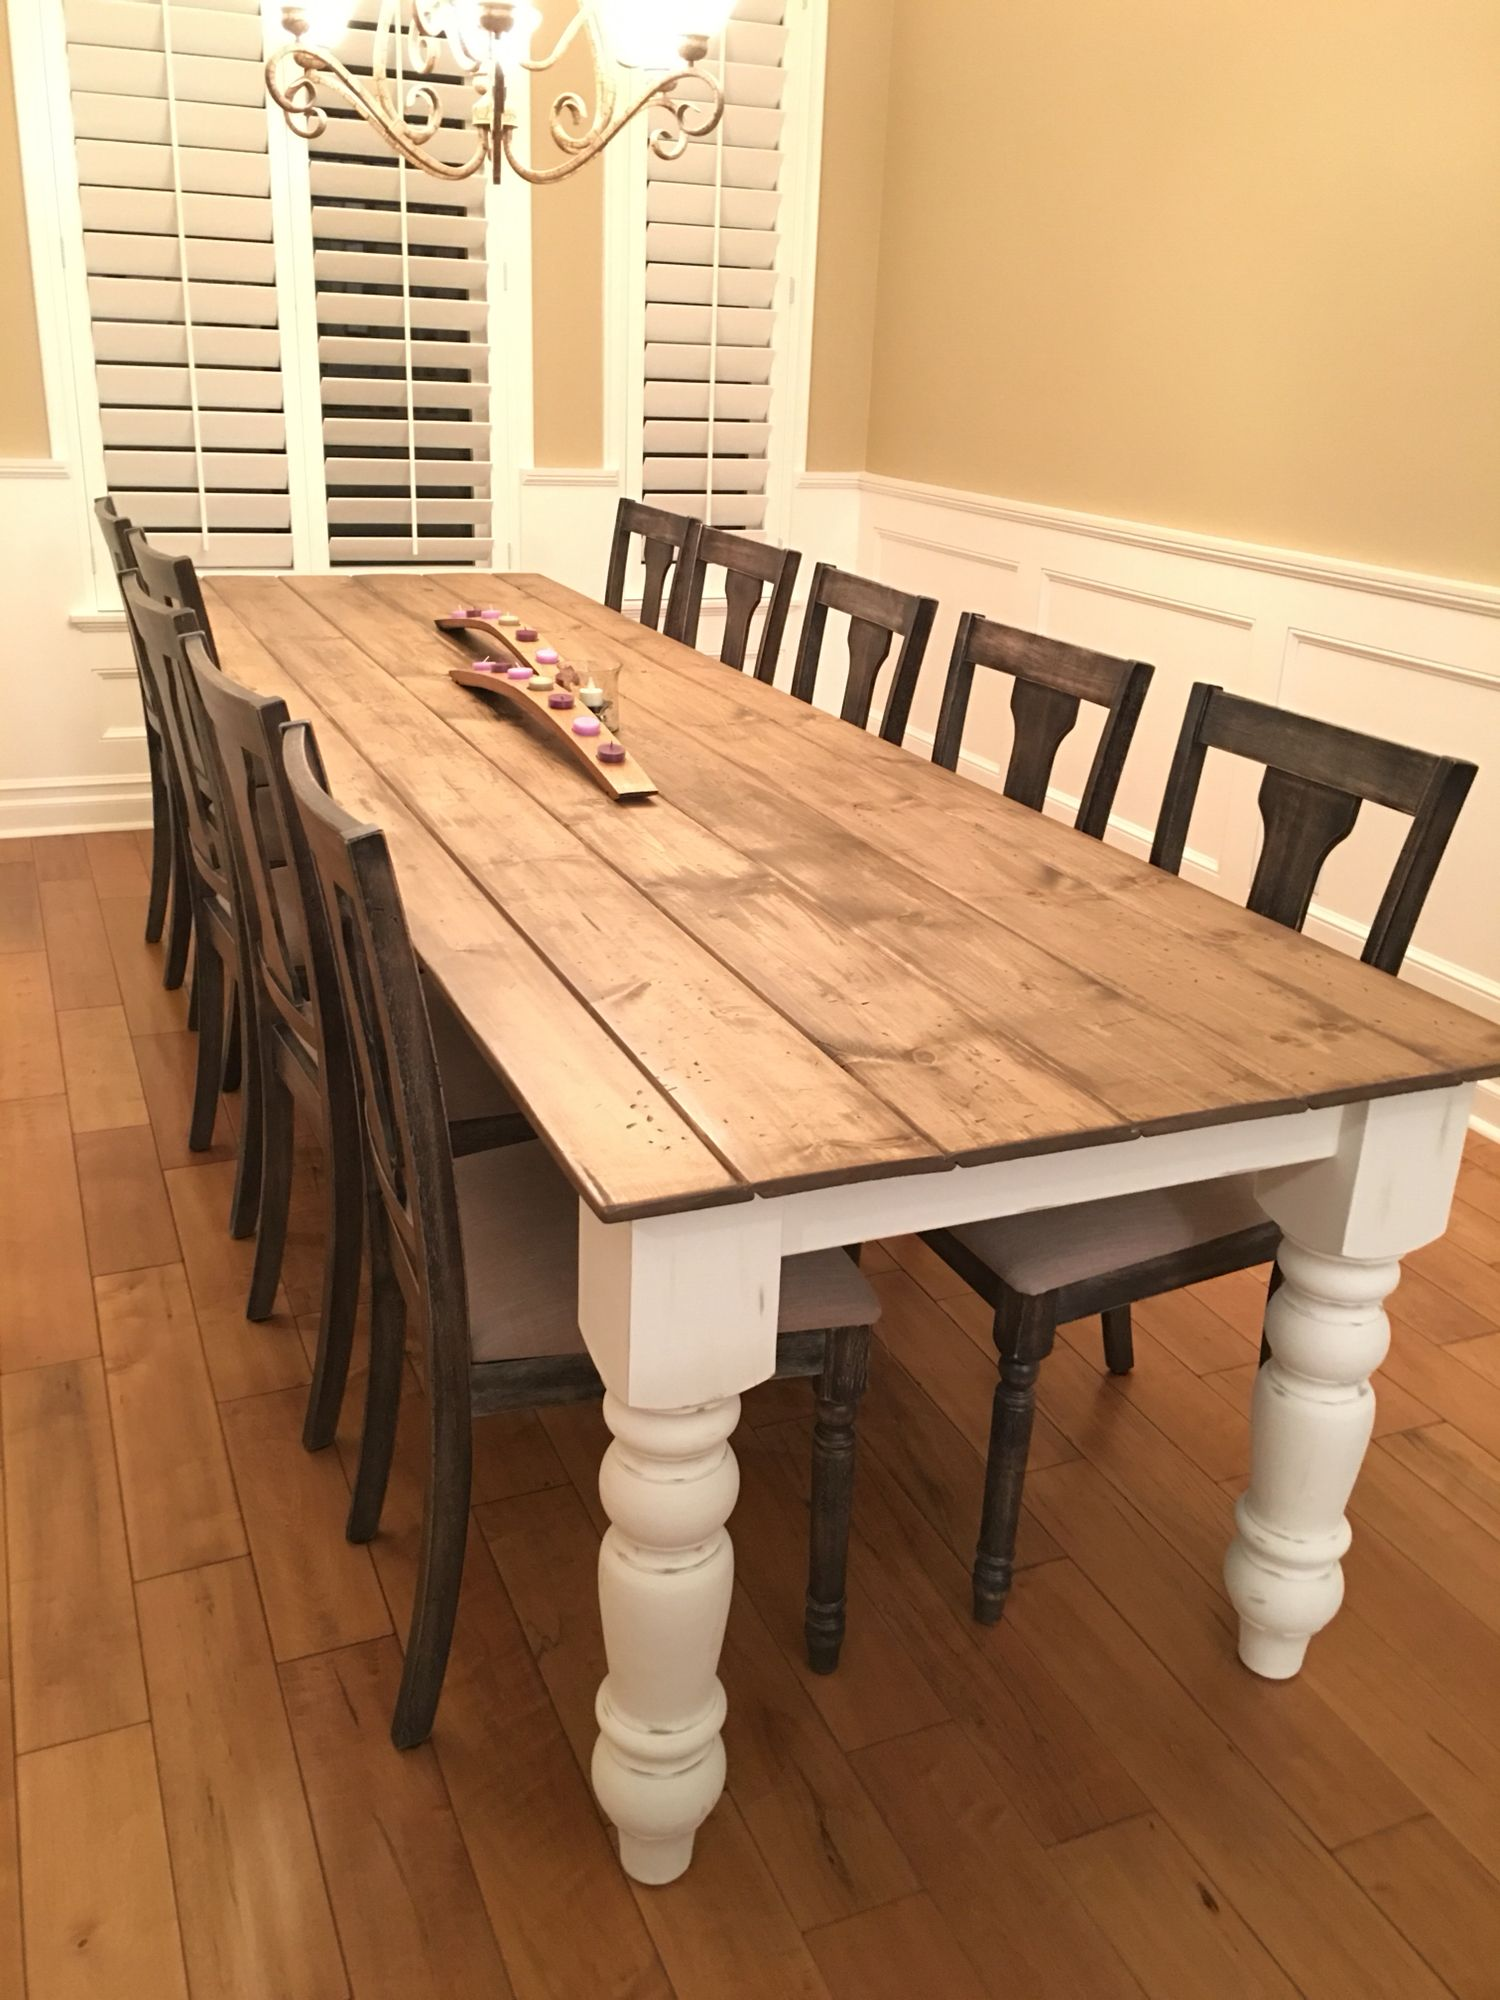 DIY FARMHOUSE TABLE My Husband Made 10 Foot 8 Inch